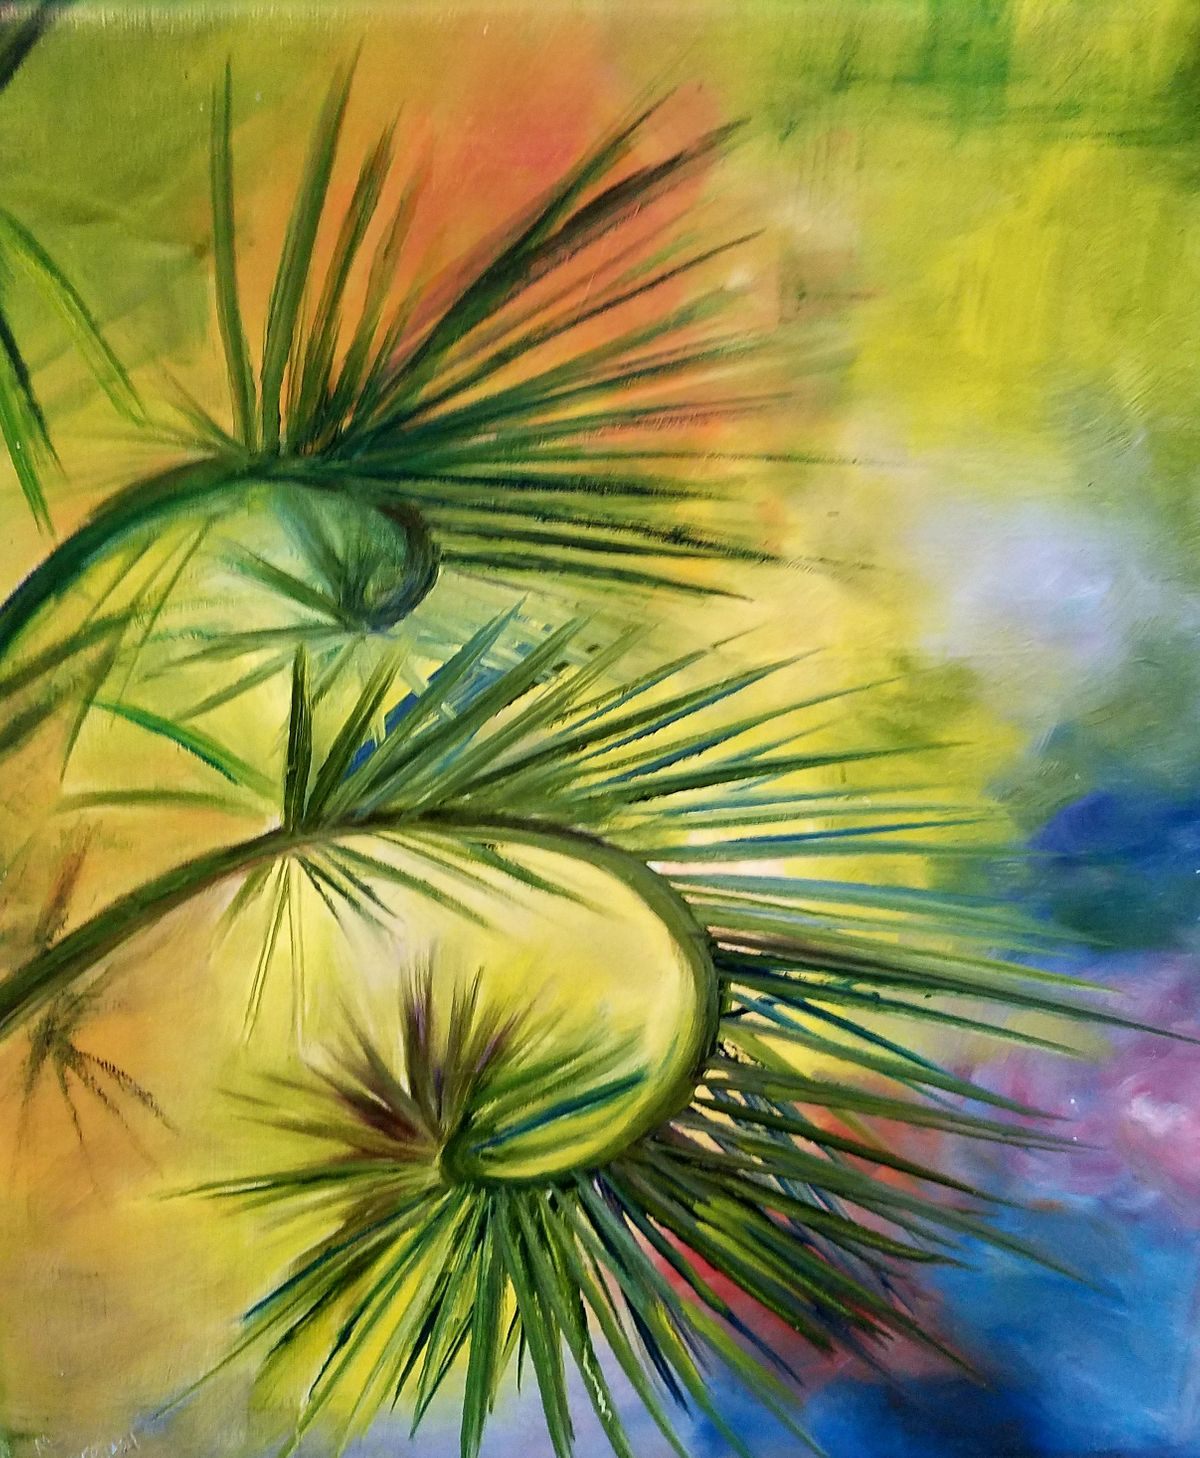 1_Marilyn_Querejazu_Palm in sunlight #3_Austin Art_Austin Artist_Austin Gifts.jpg